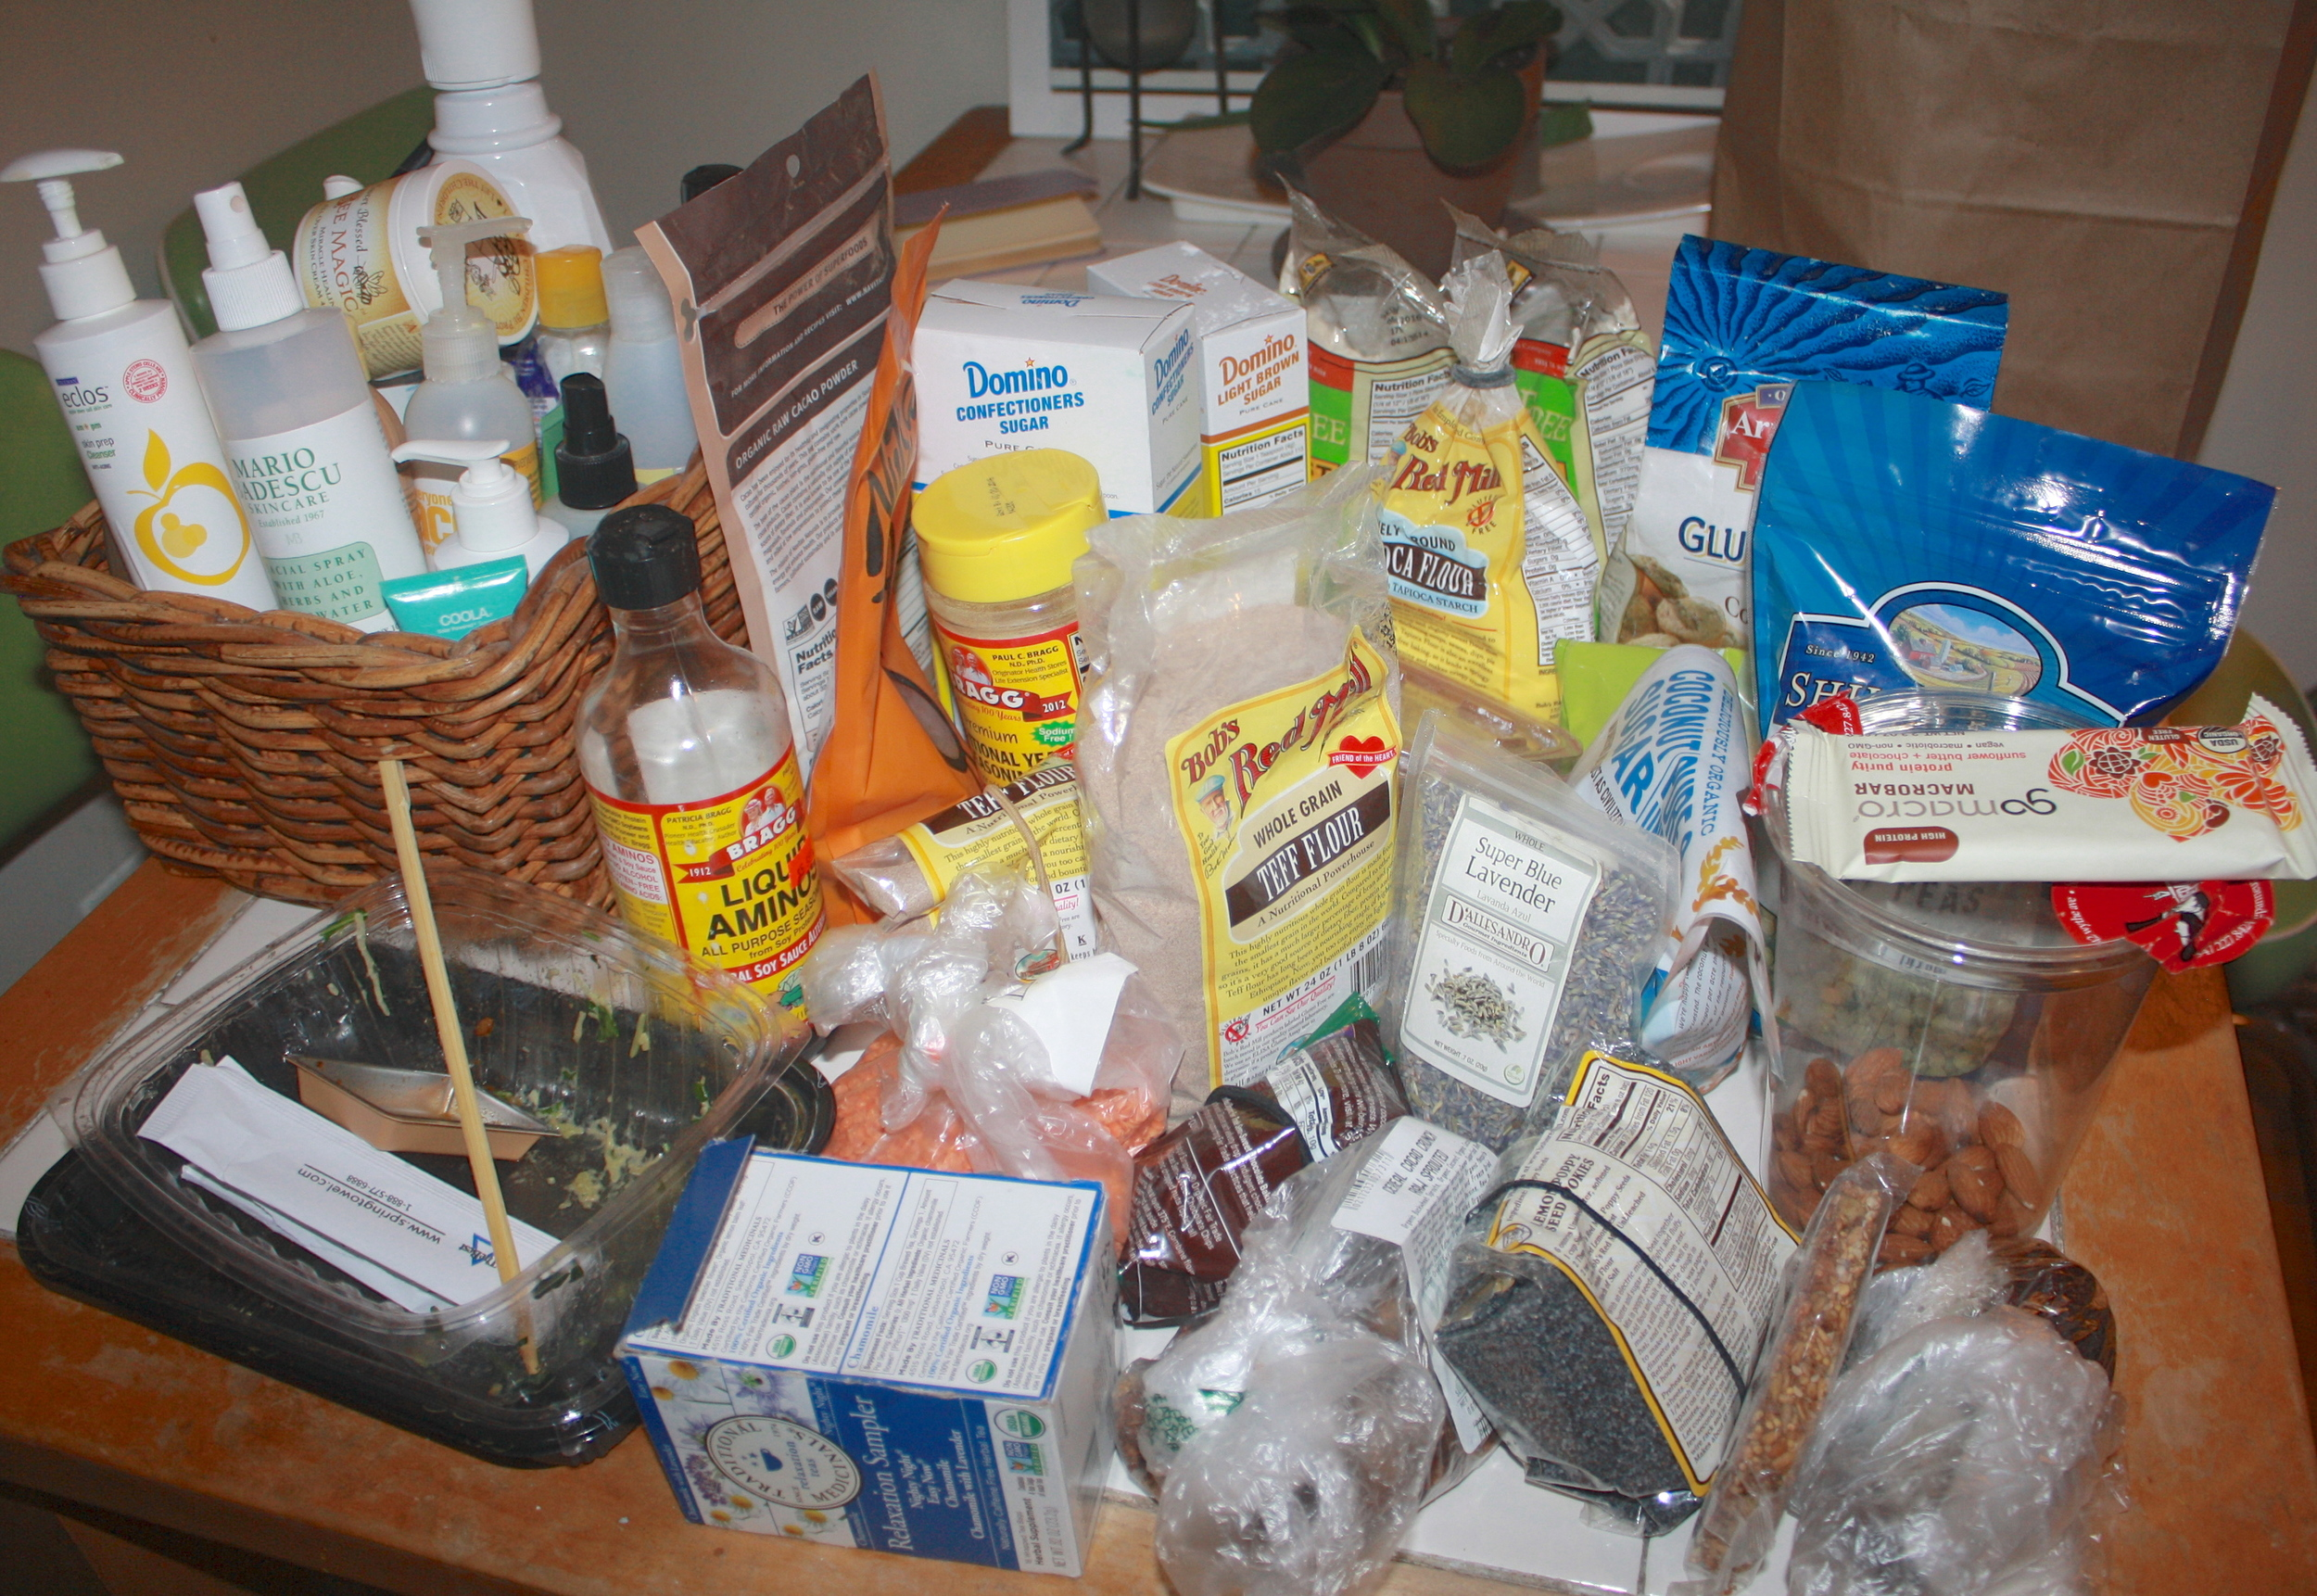 I took this picture because I was blown away at my over consuming habits, and these items are just not necessary to buy in all the plastic packaging. This was mostly baking goods I stocked up on every couple weeks! The basket to the left is just a bunch of beauty products that kept piling.